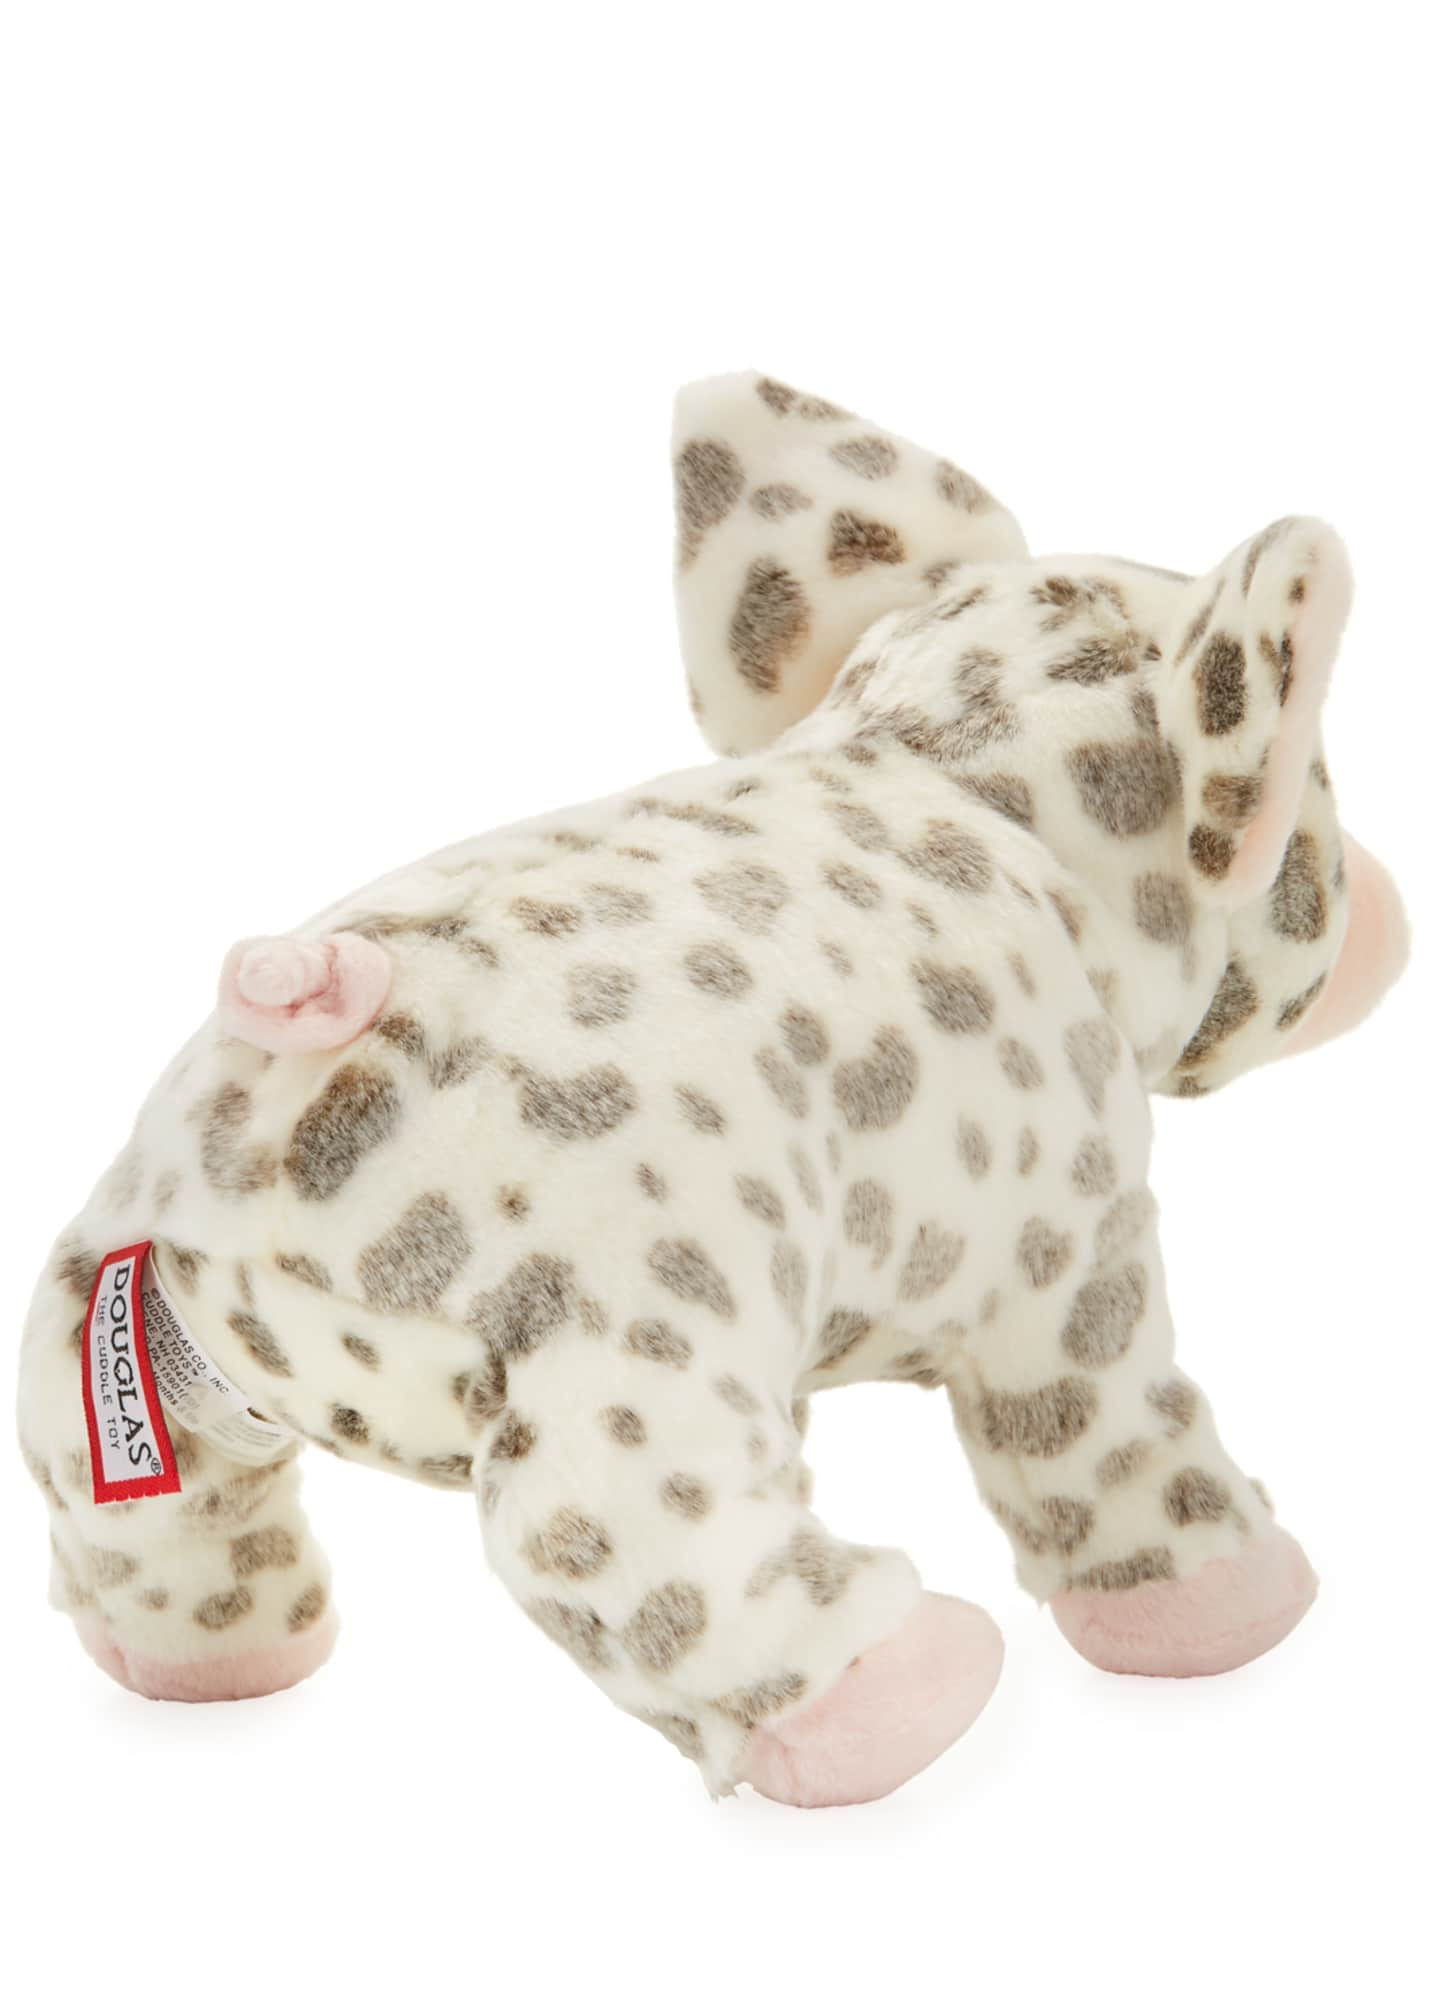 Image 2 of 2: Pauline Spotted Pig Plush Toy, 12""